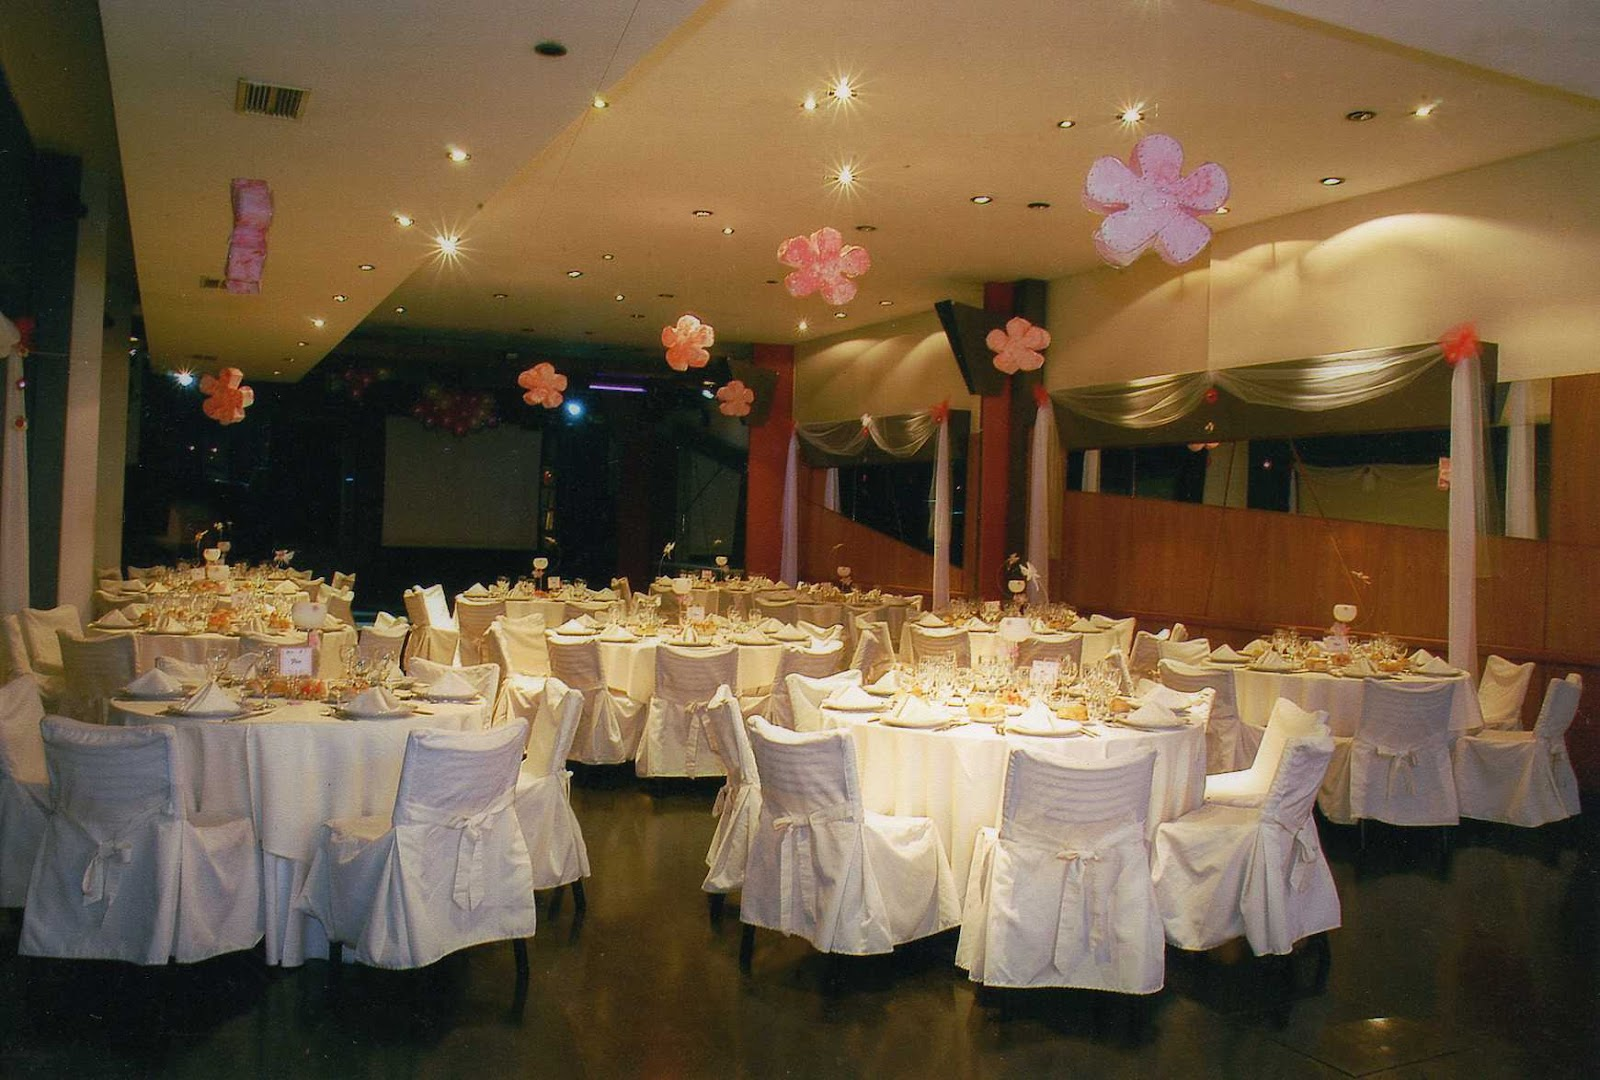 Faar eventos decoraciones - Decoraciones de salon ...